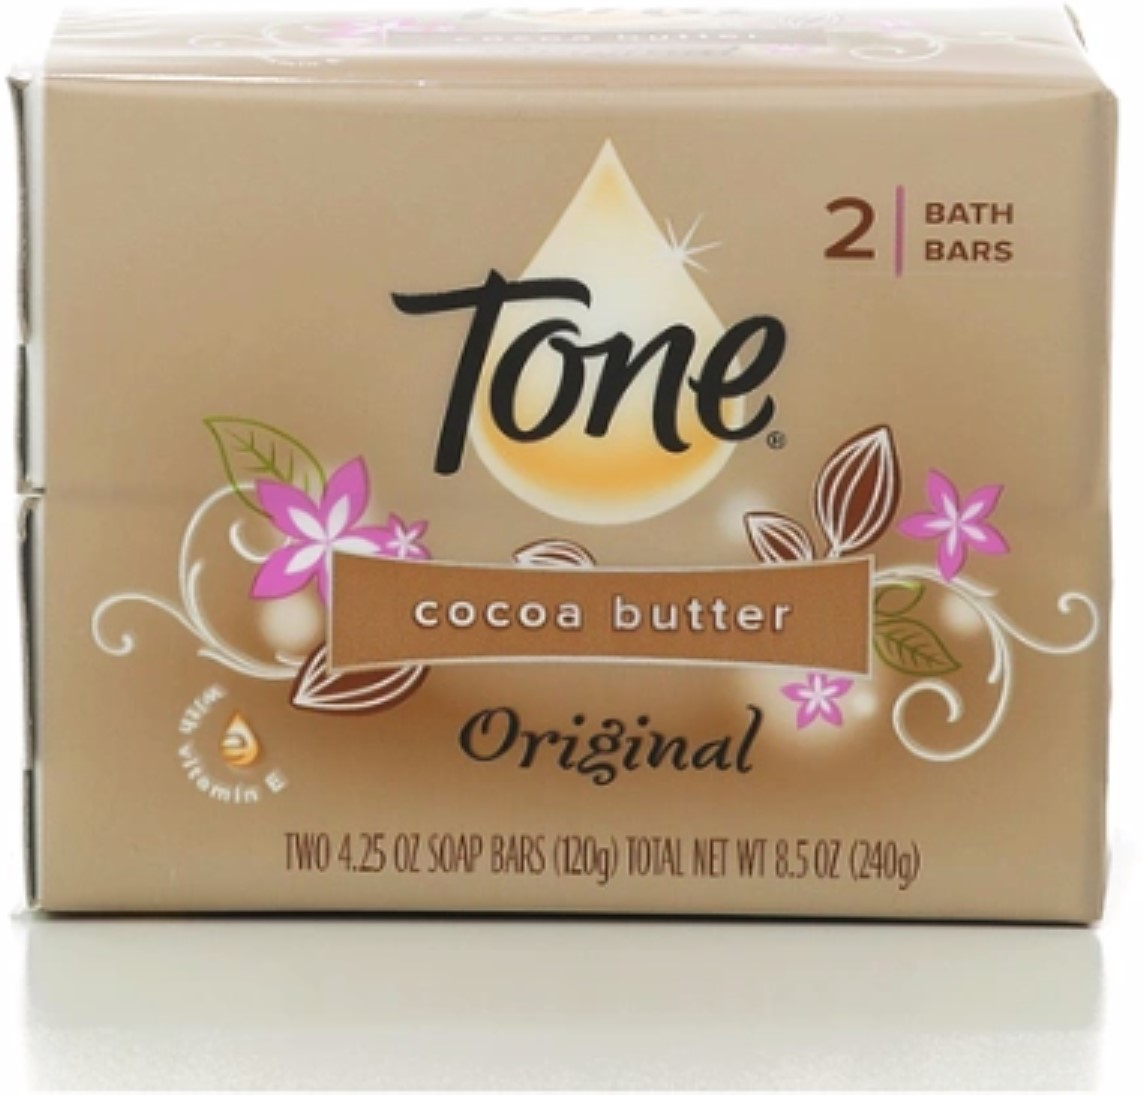 Tone Bath Bars, Cocoa Butter 4.25 oz bars, 2 ea (Pack of 4)